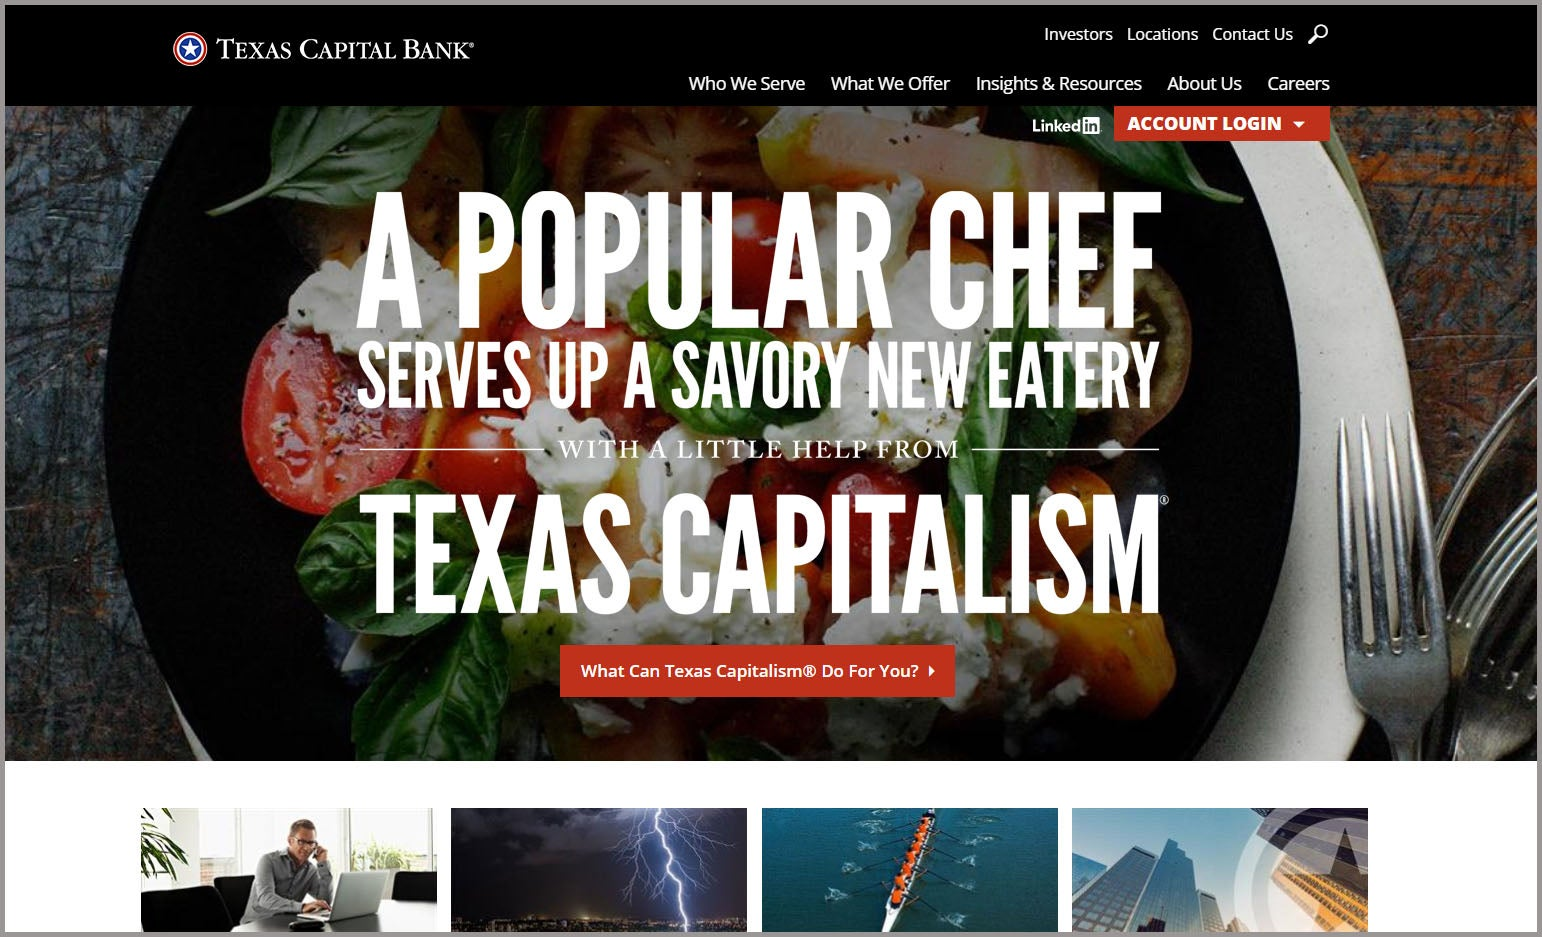 Texas Capital Home Page